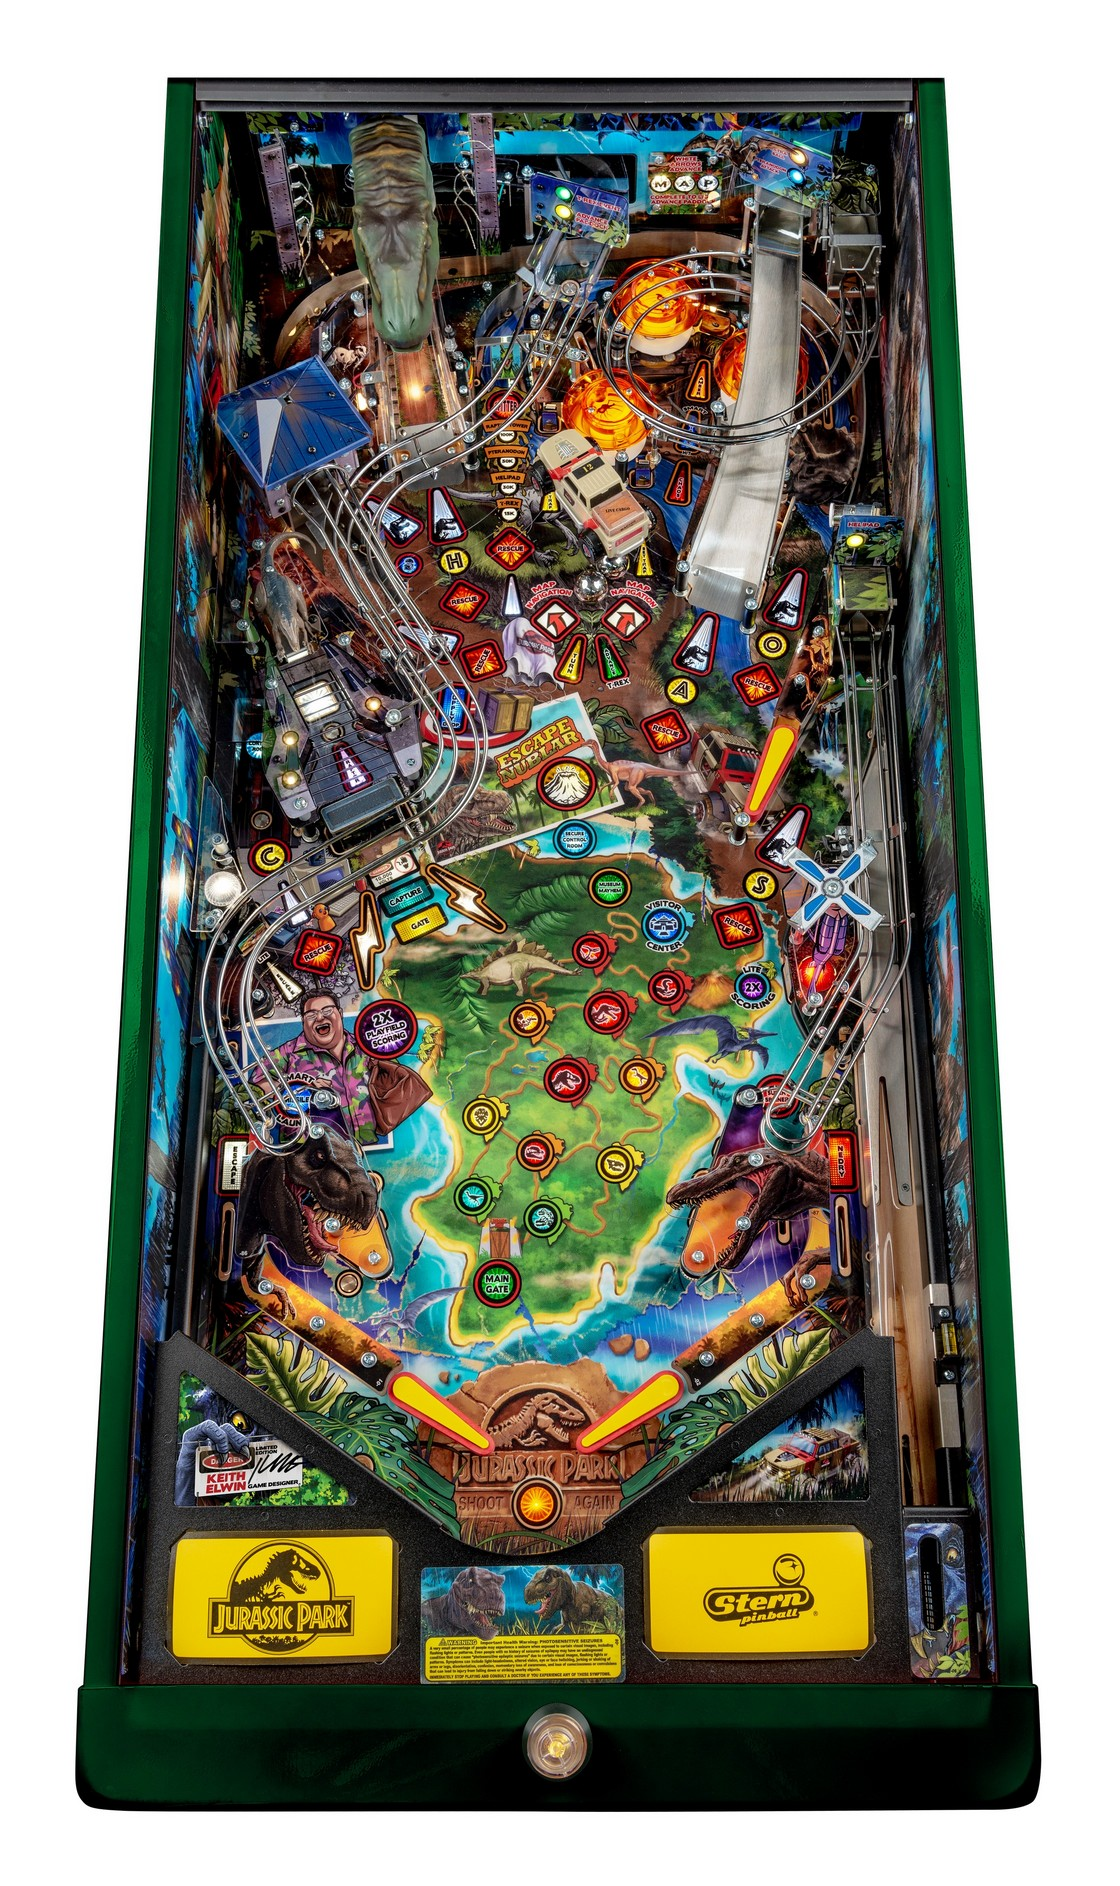 JURASSIC PARK LIMITED EDITION PINBALL Image - Click To Enlarge